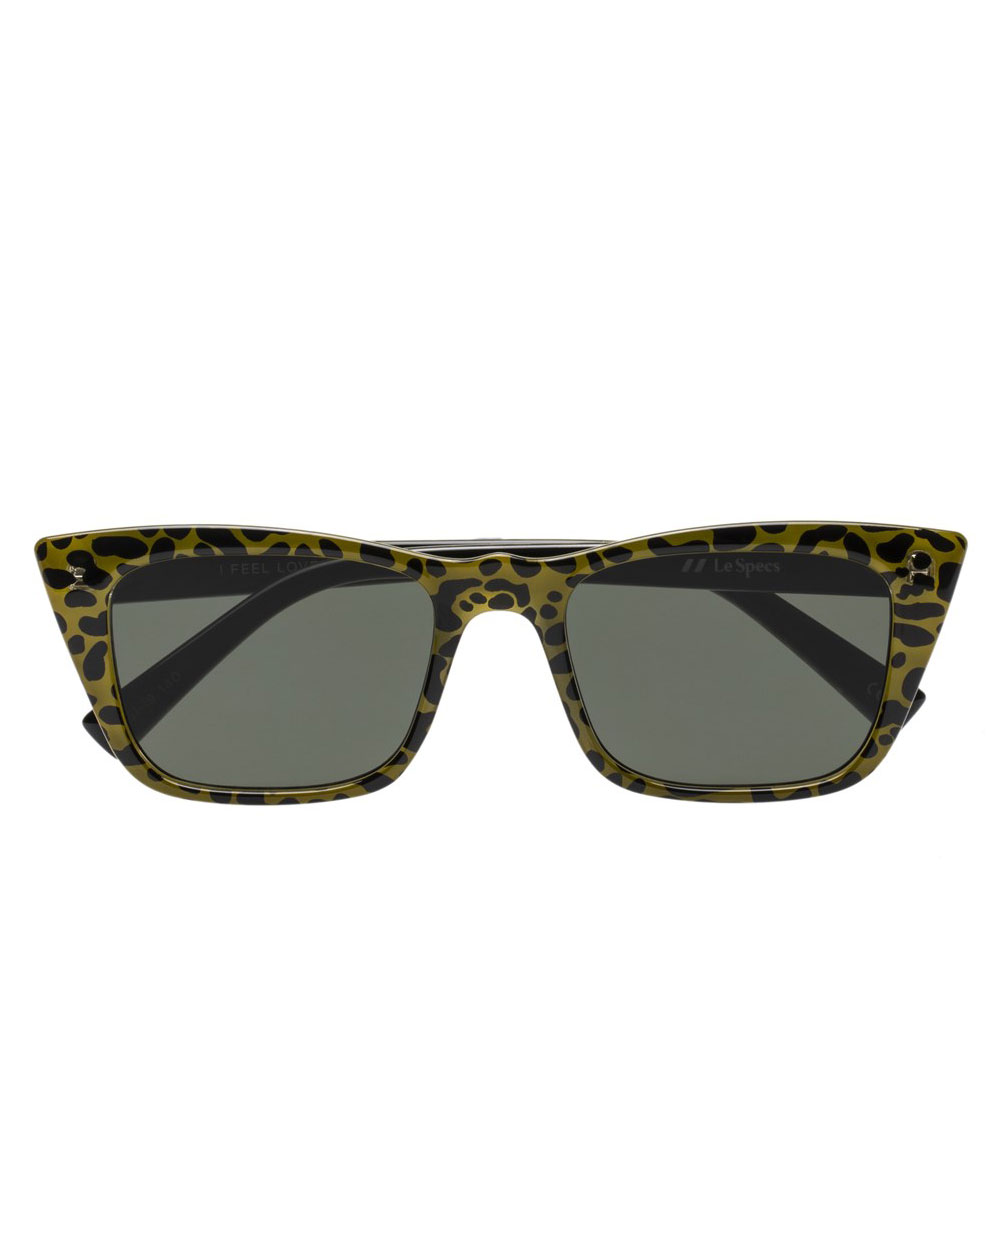 Le Spec Sunglasses     $59